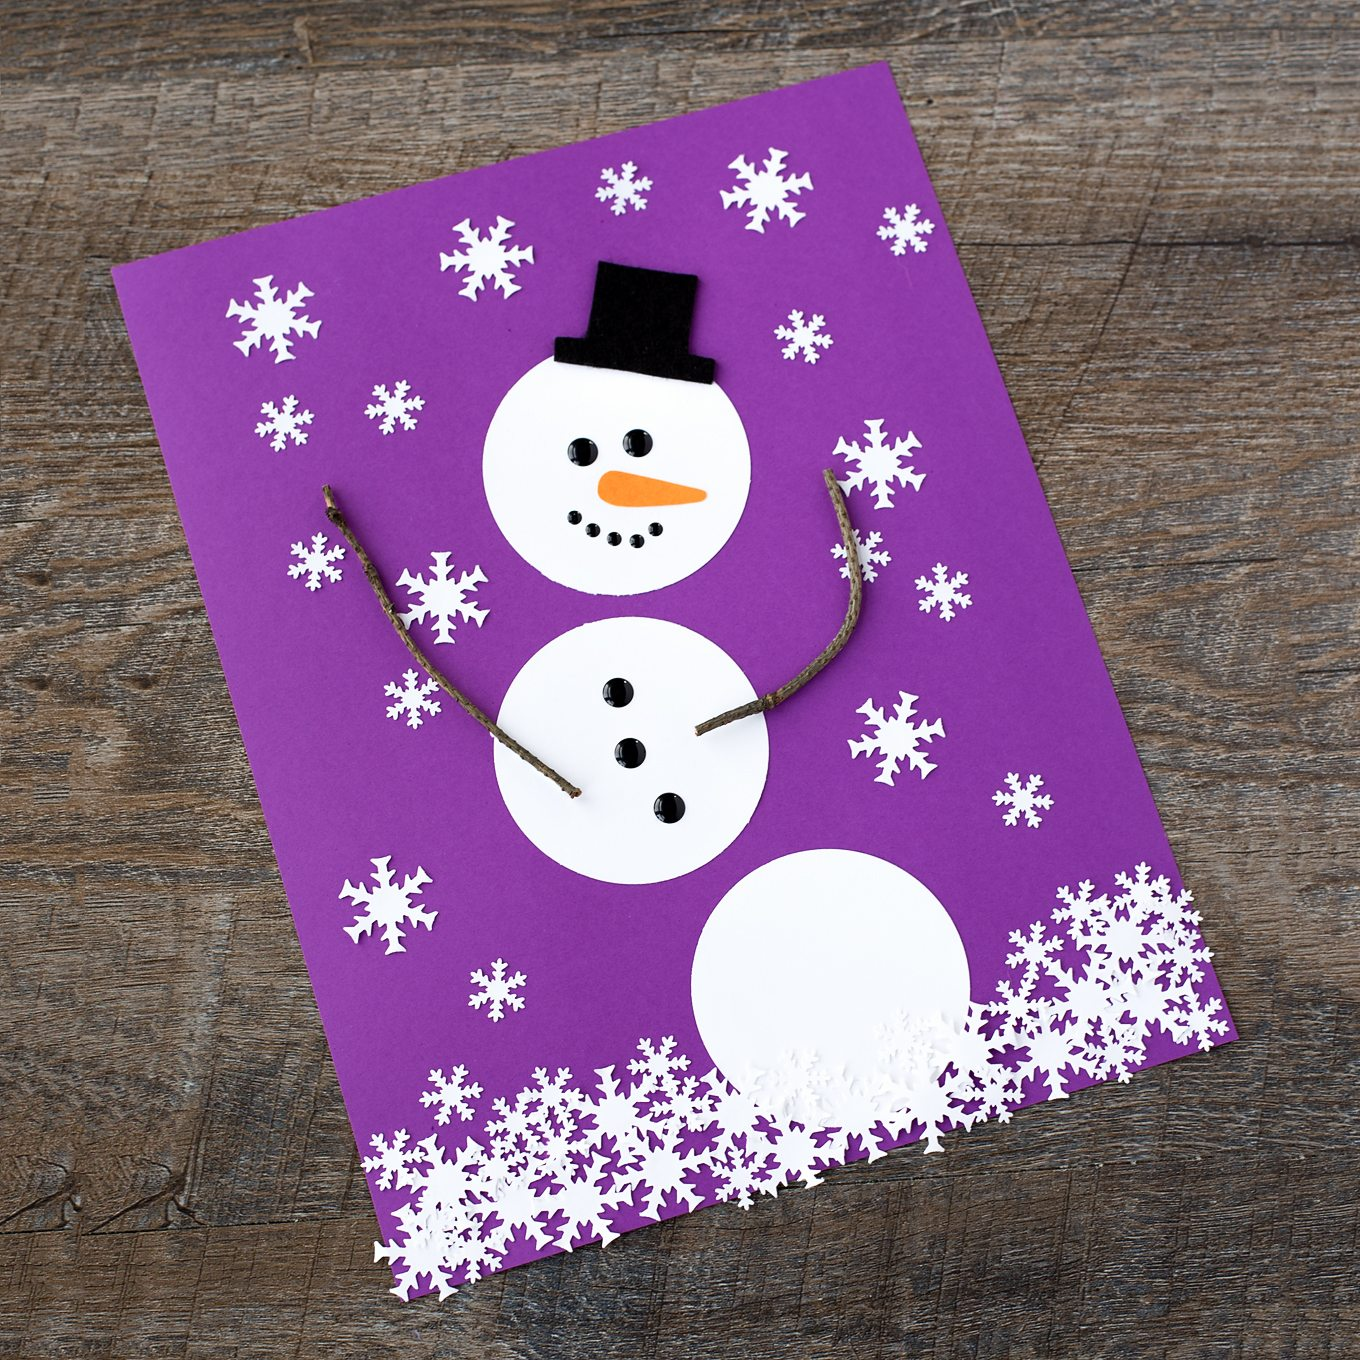 Winter Is The Perfect Season For Snowman Crafts Whether Kids Are Learning About Snow And